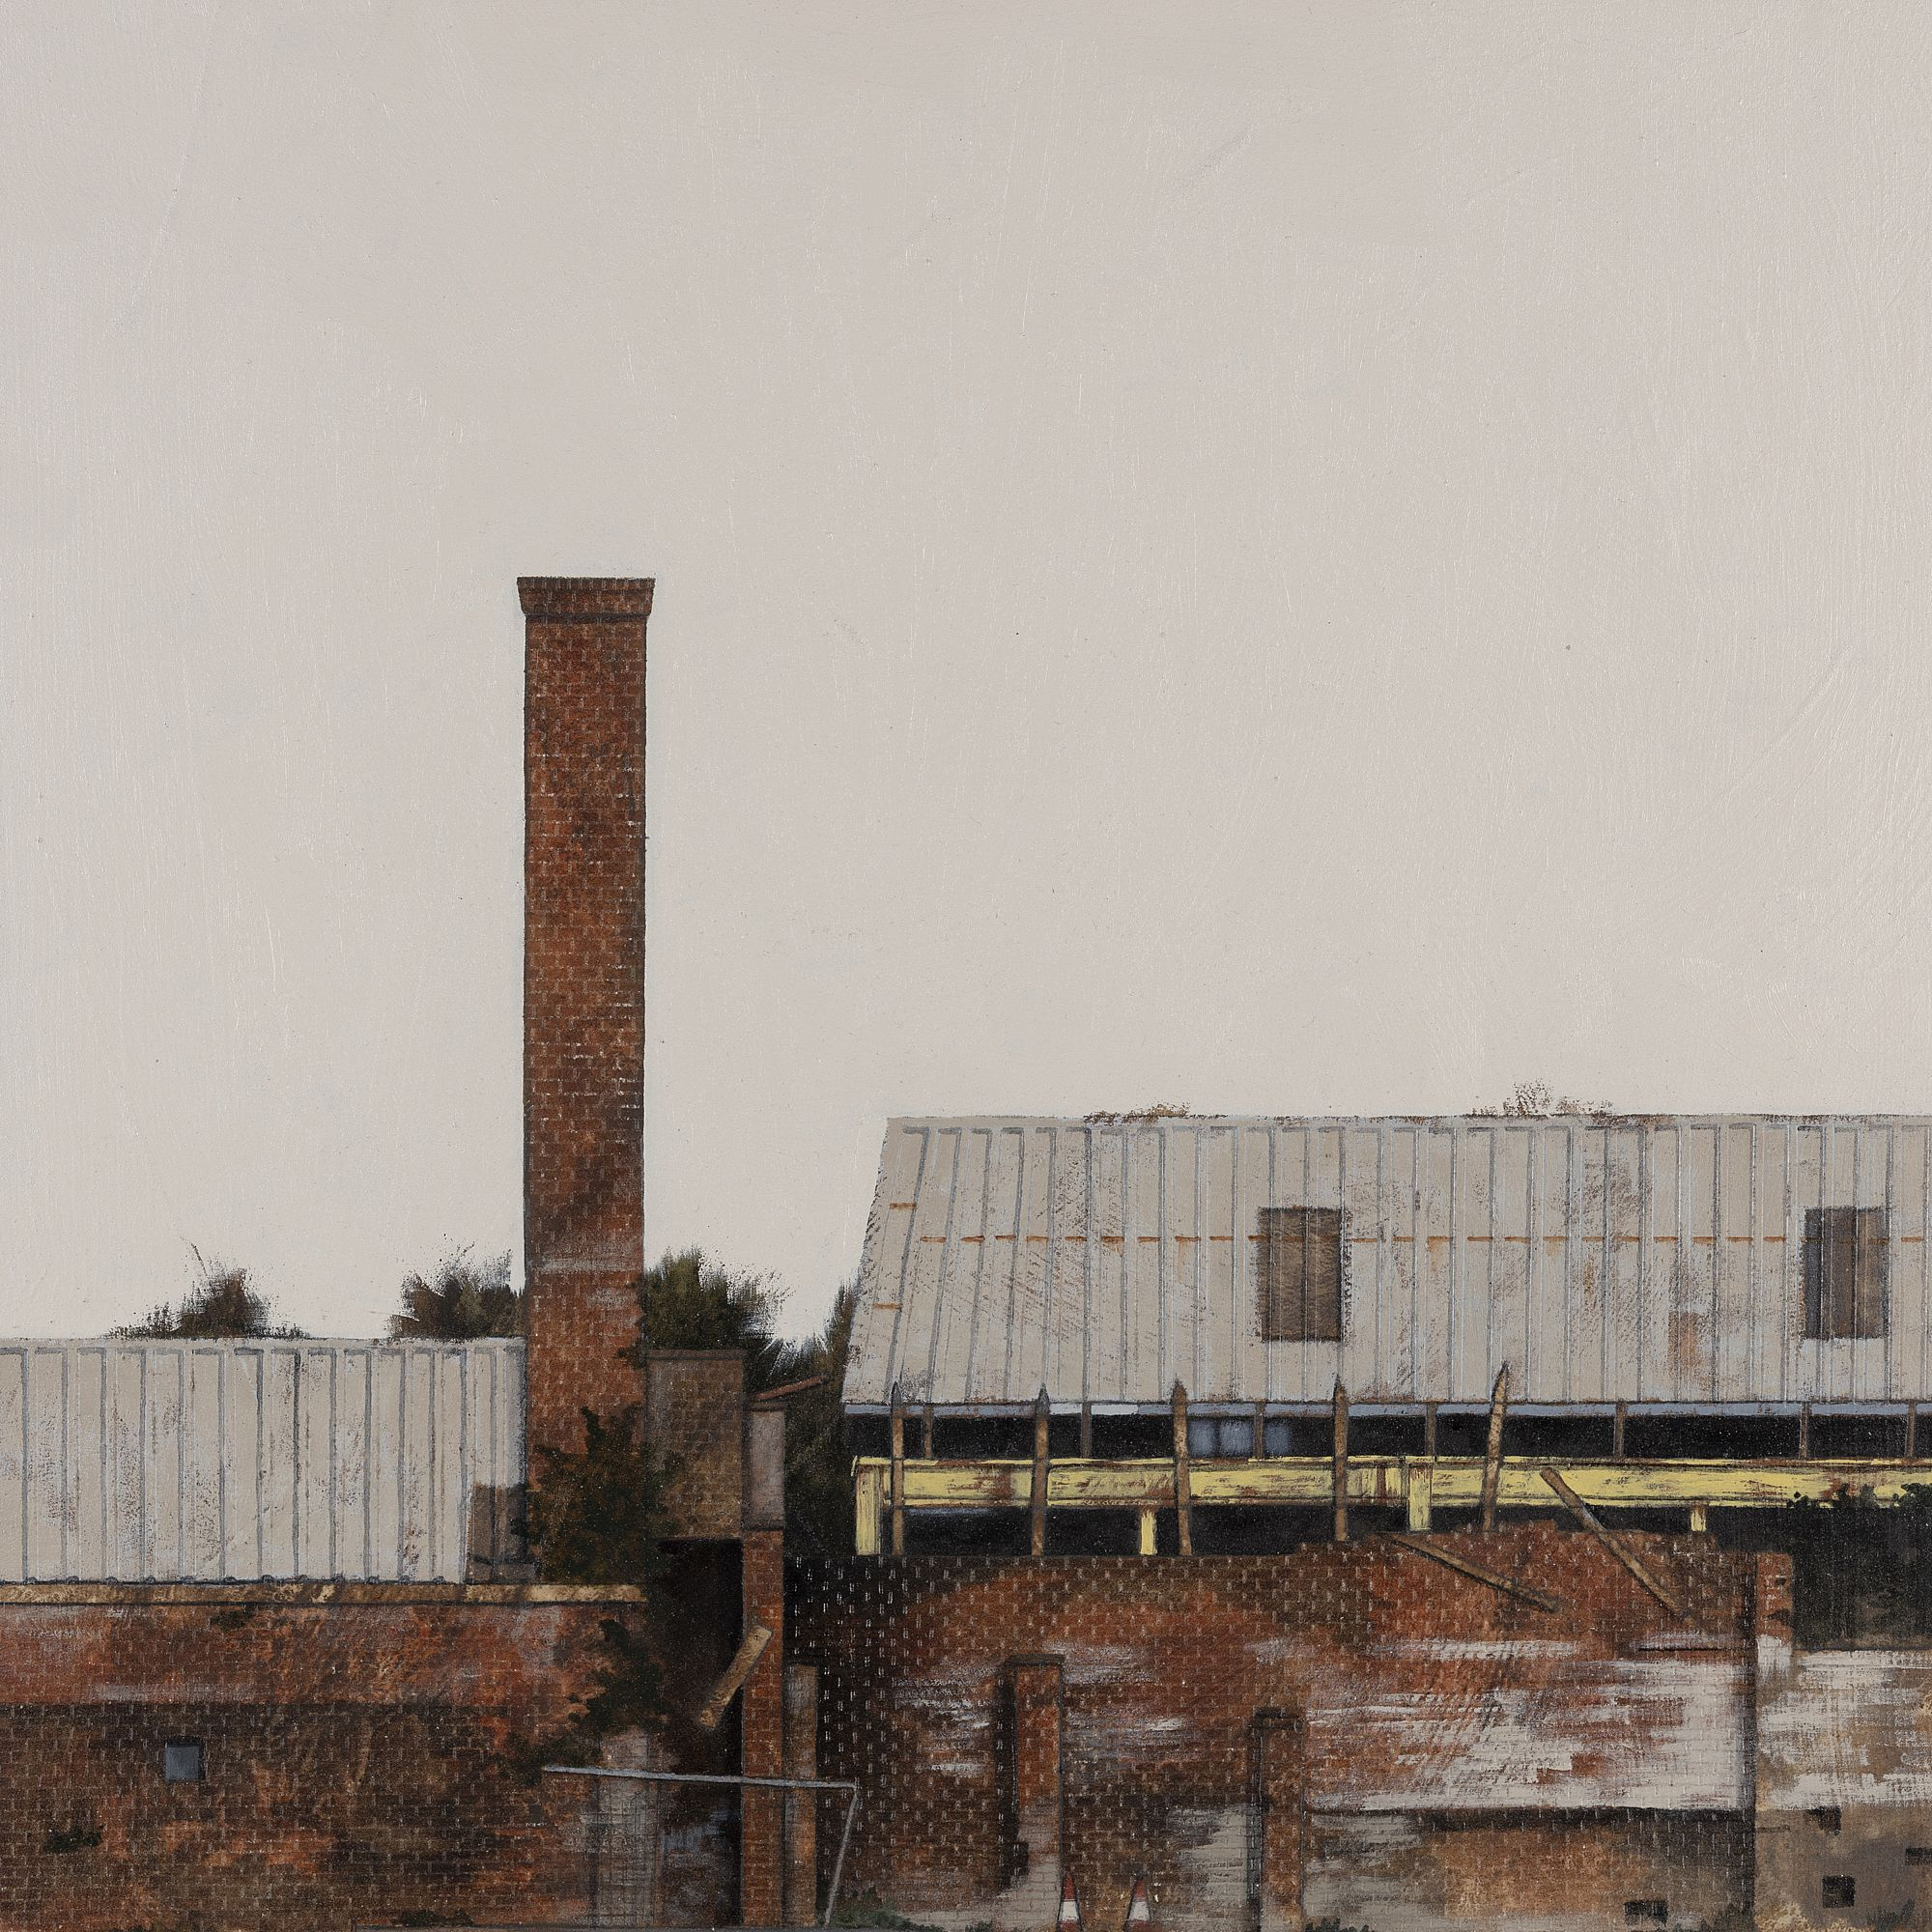 Chimney & Warehouse